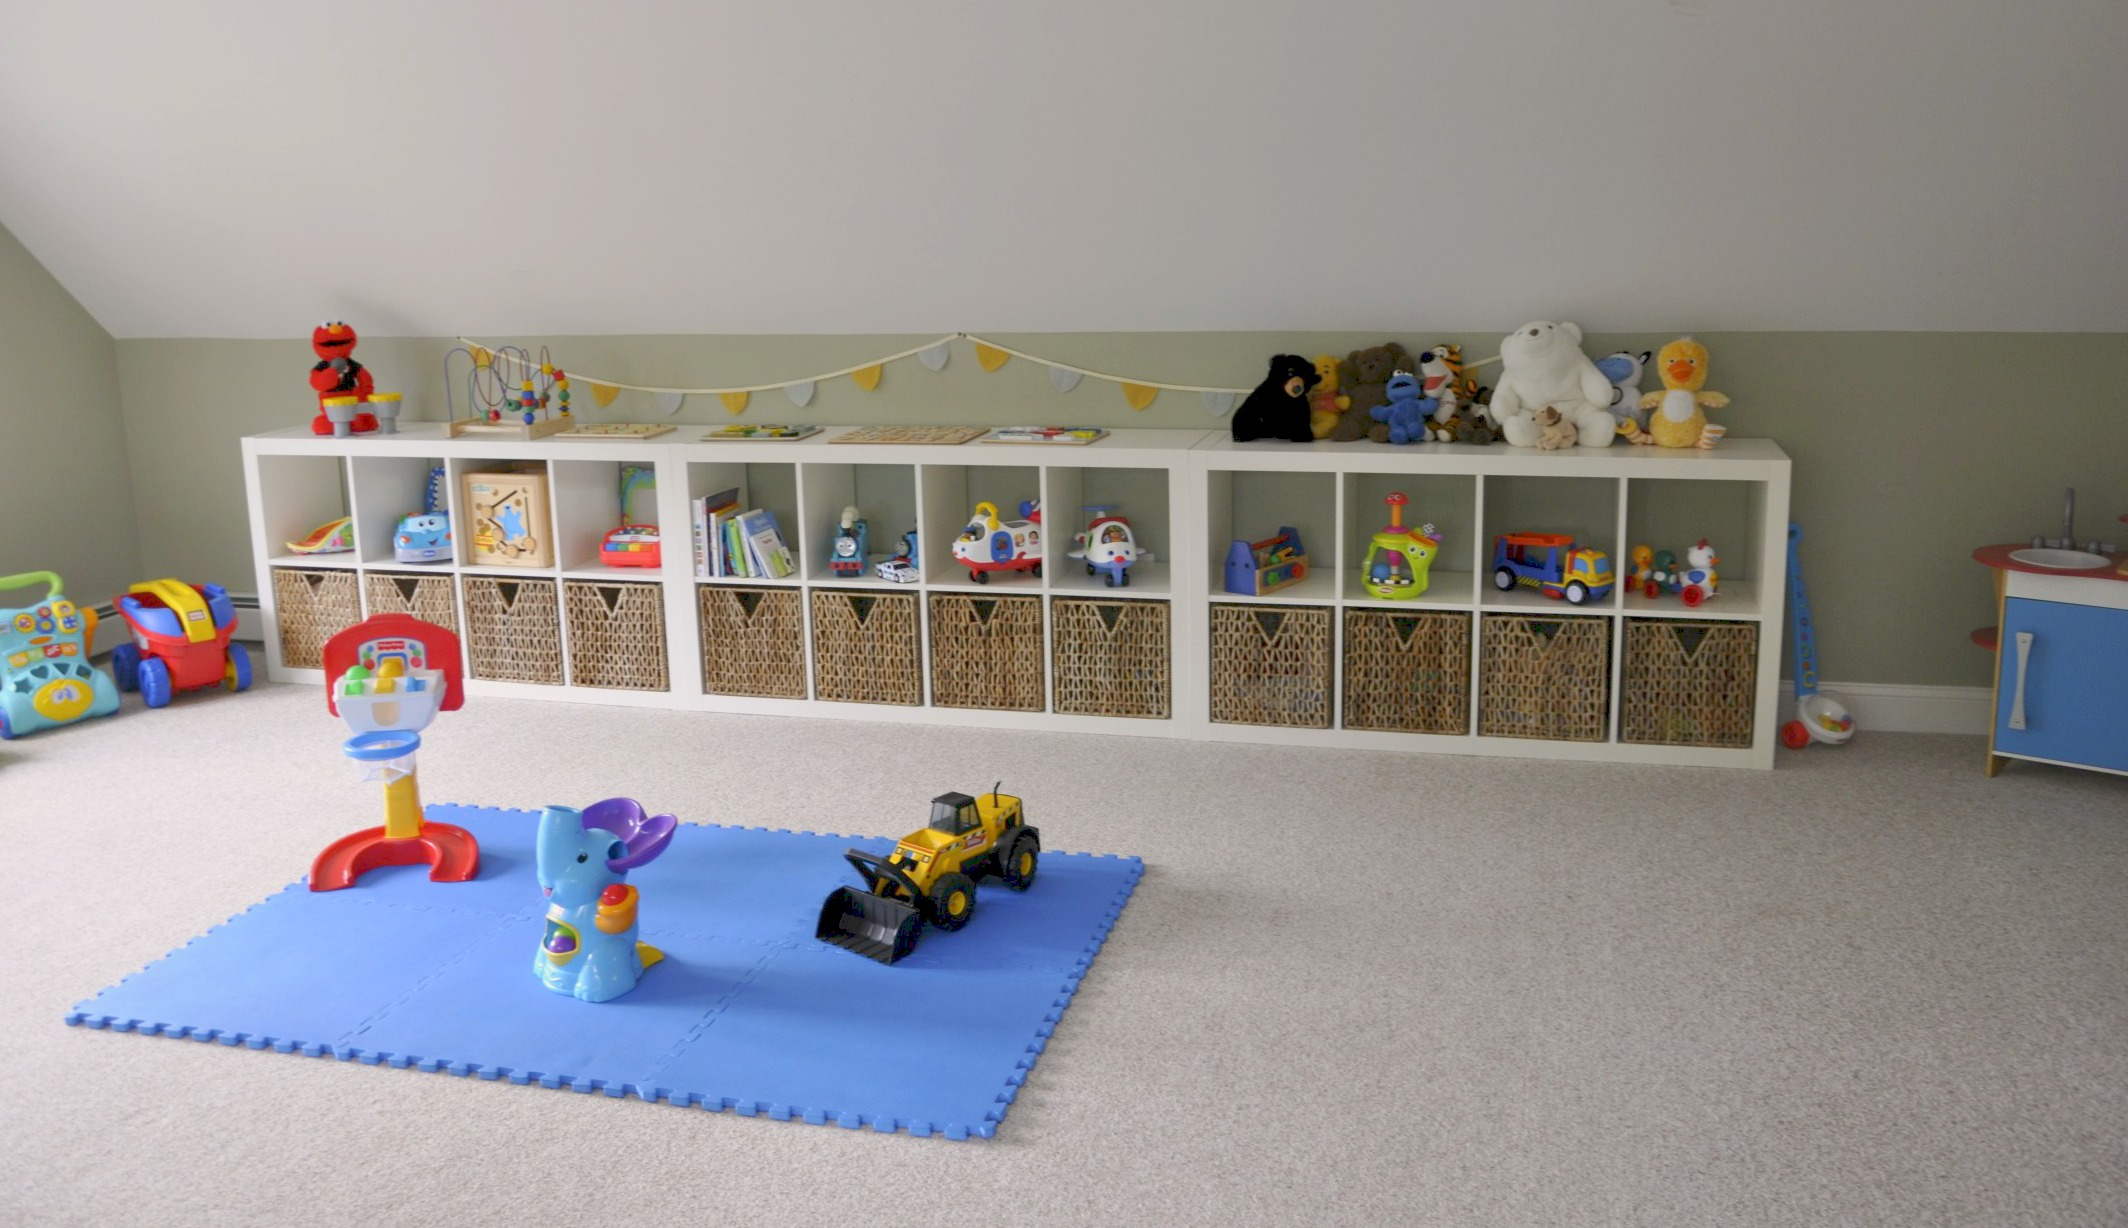 Ikea expedit playroom storage 2 sisters 2 cities Playroom flooring ideas